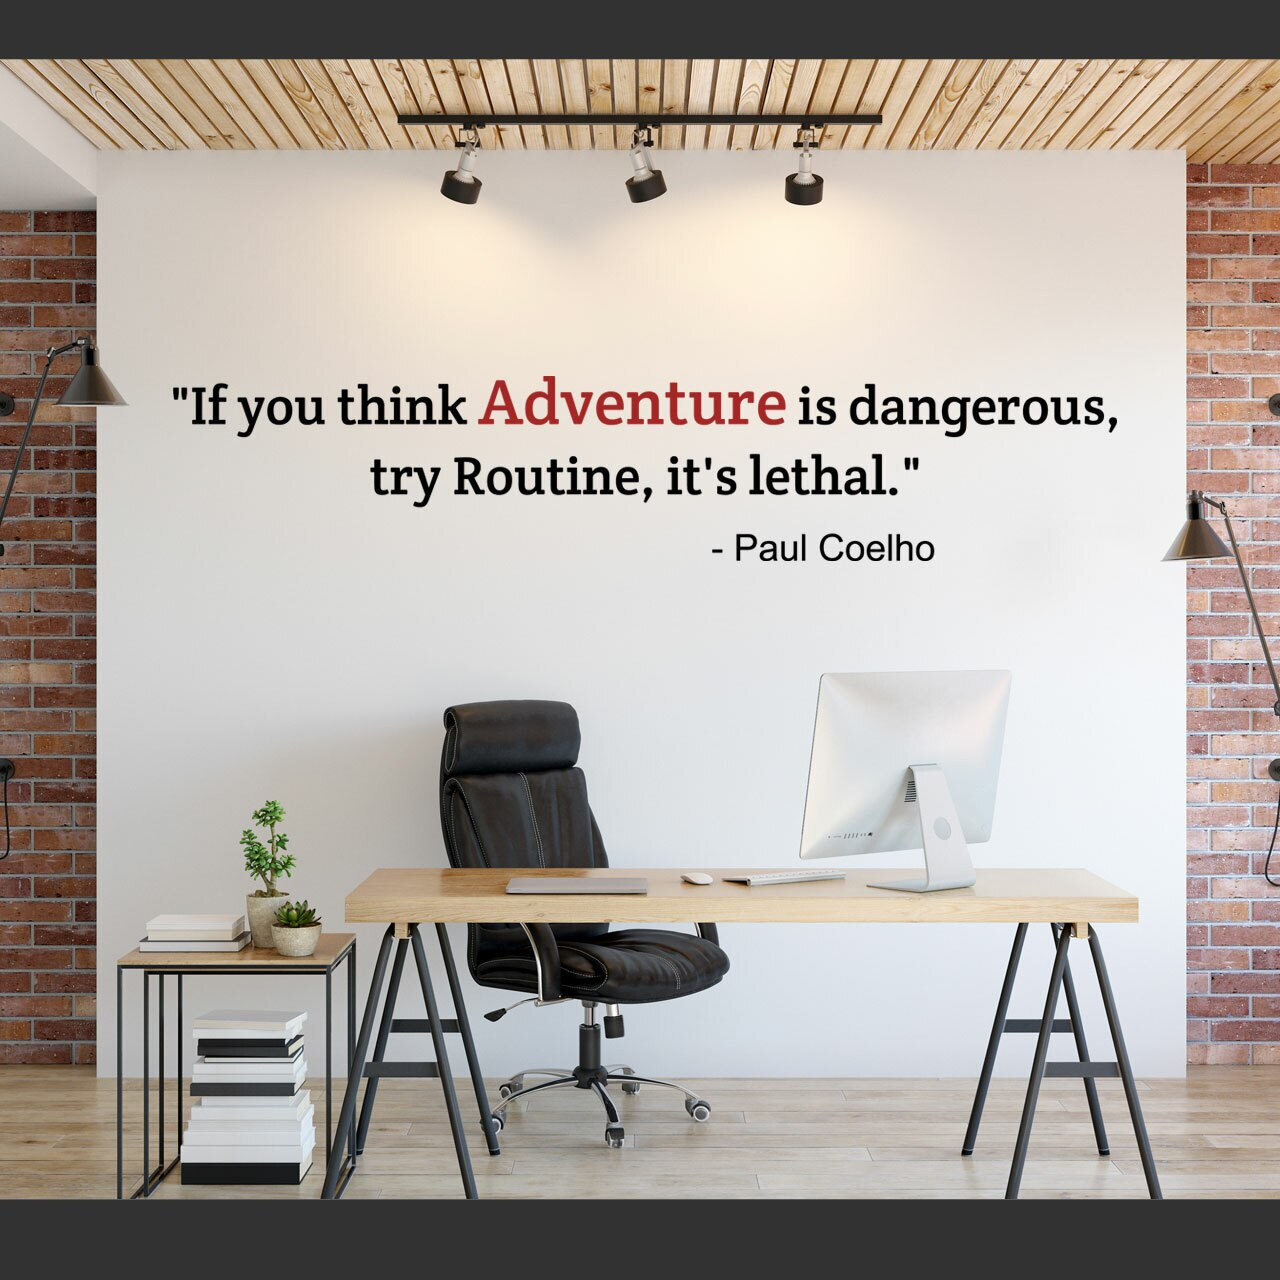 If you think Adventure is dangerous, try routine, it's lethal -Paul Coelho written in black vinyl lettering and the word Adventure in red vinyl lettering on a white wall over a desk